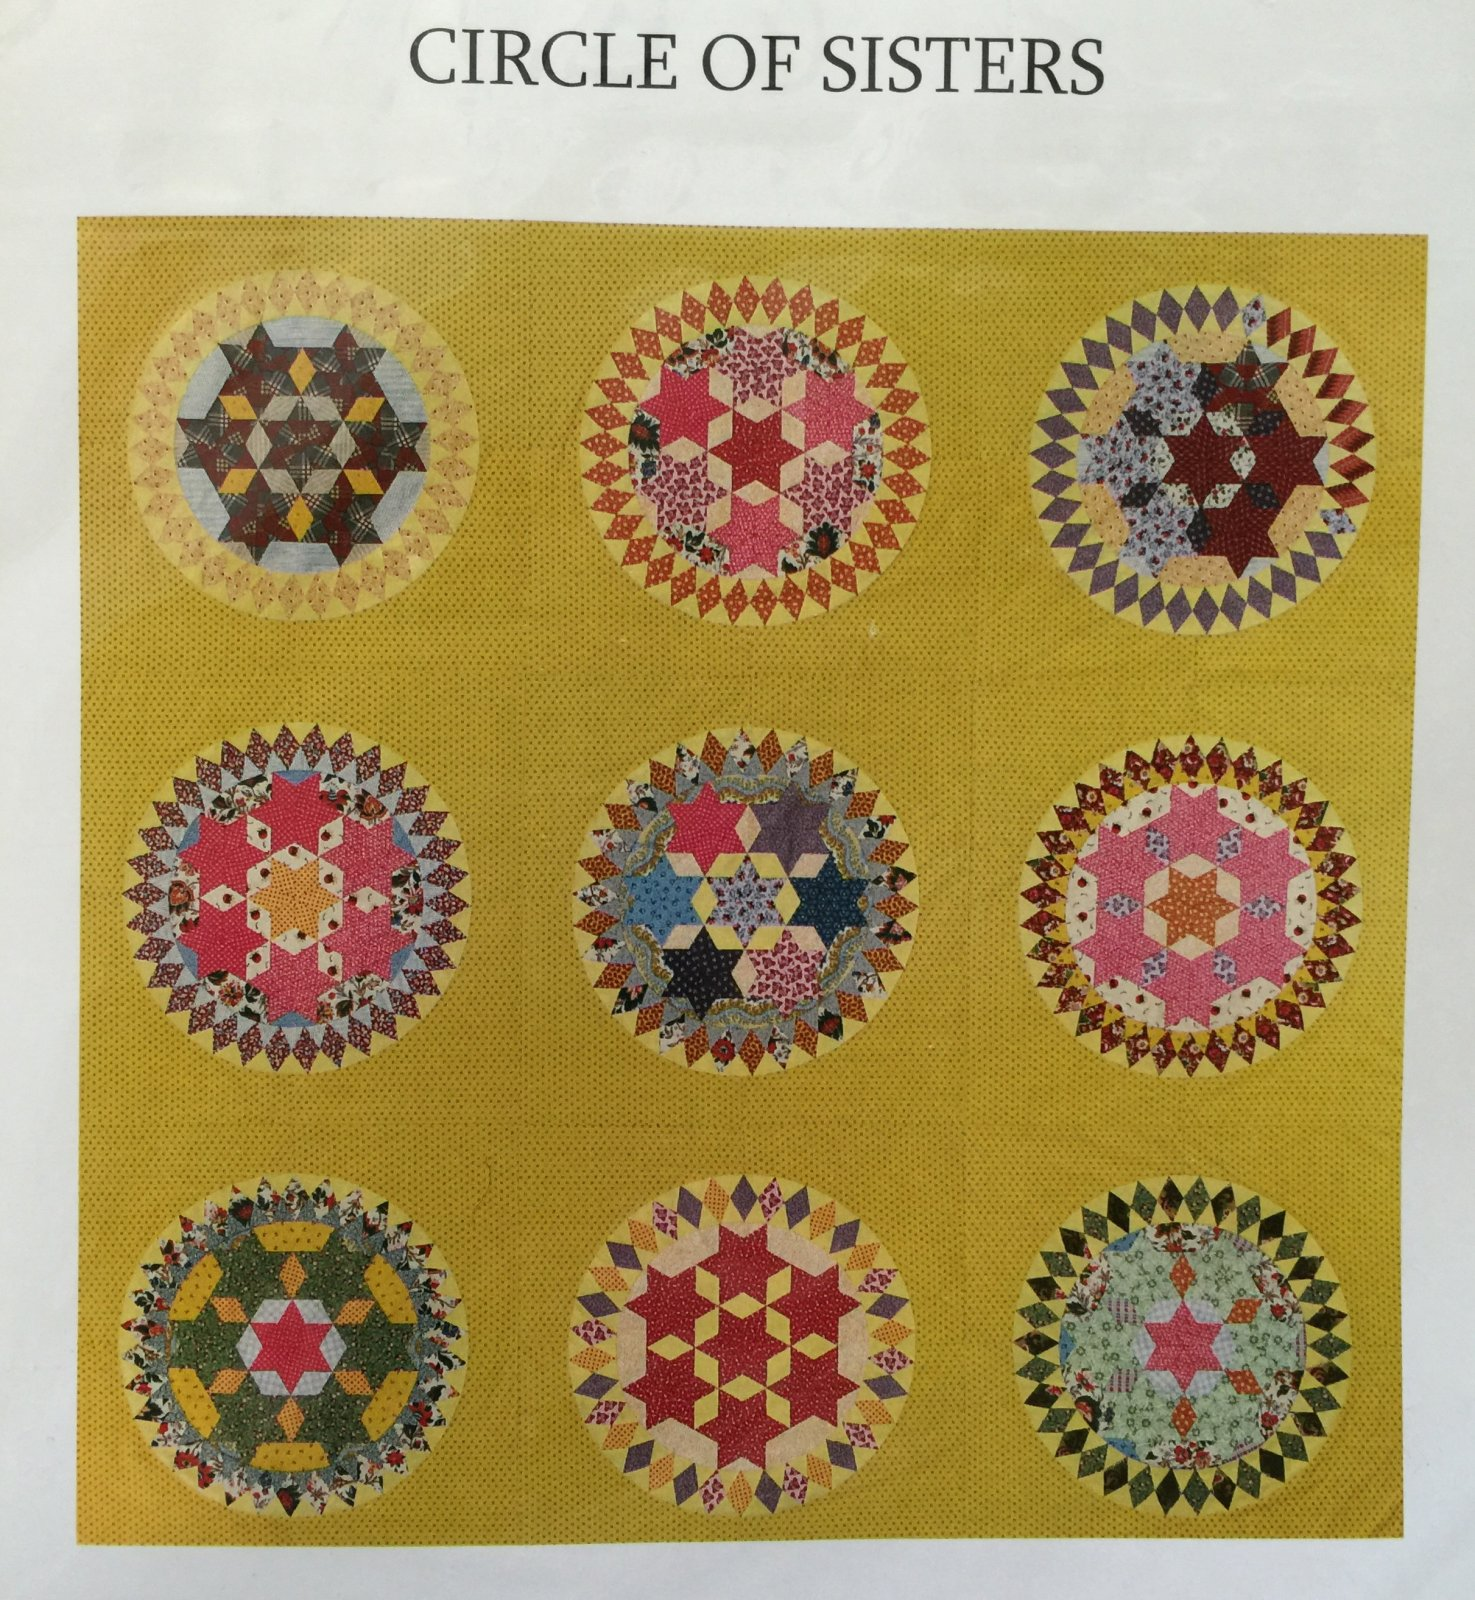 Circle of Sisters pattern with acrylics with 1/4 seam allowance